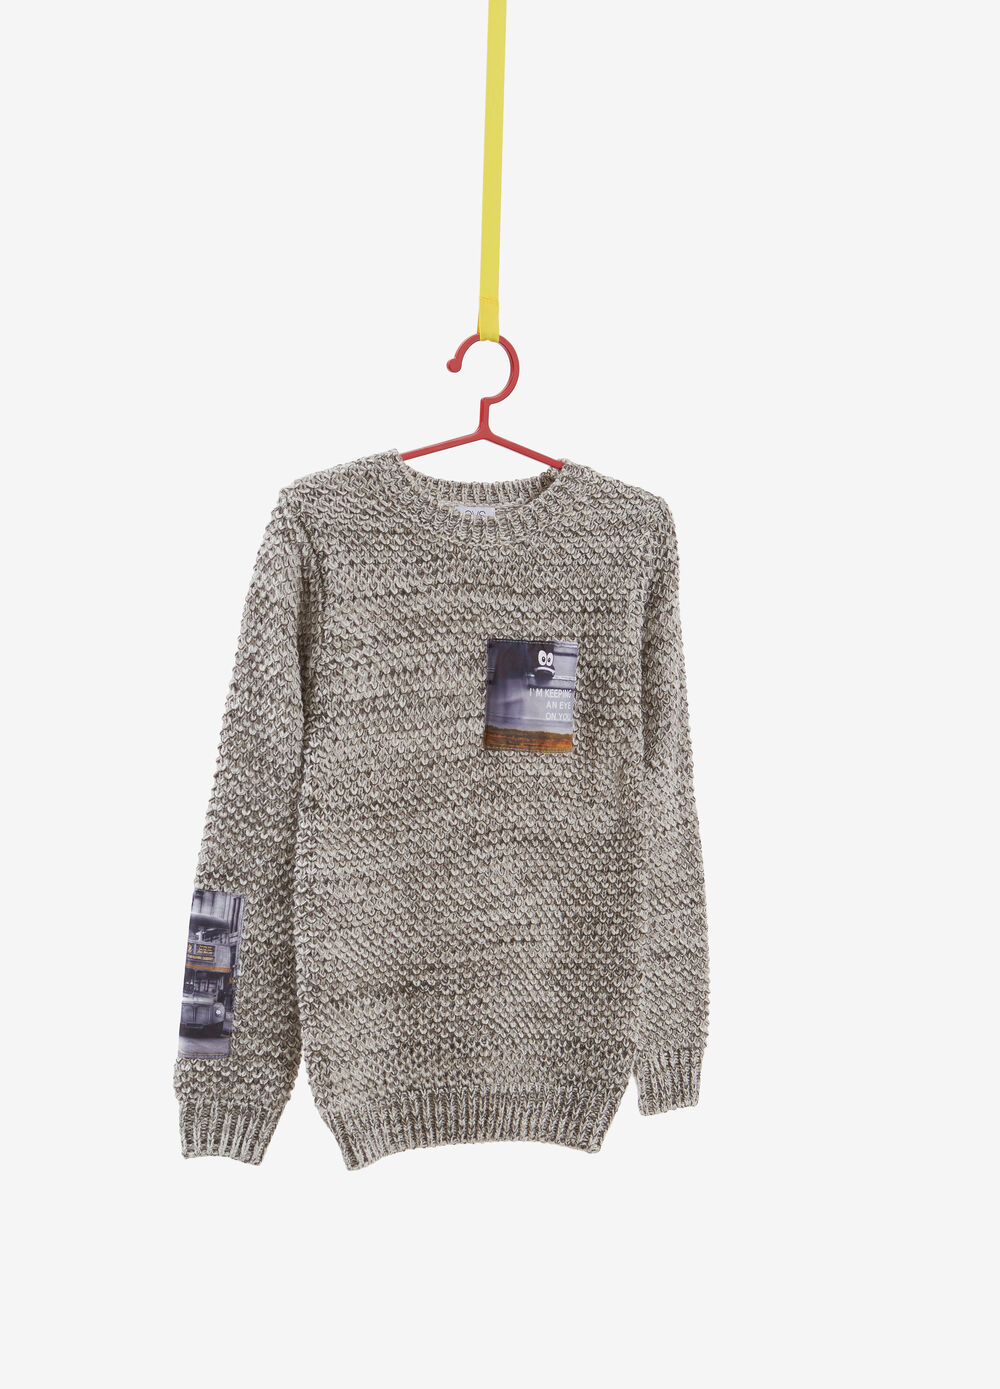 Mélange knitted pullover with breast pocket